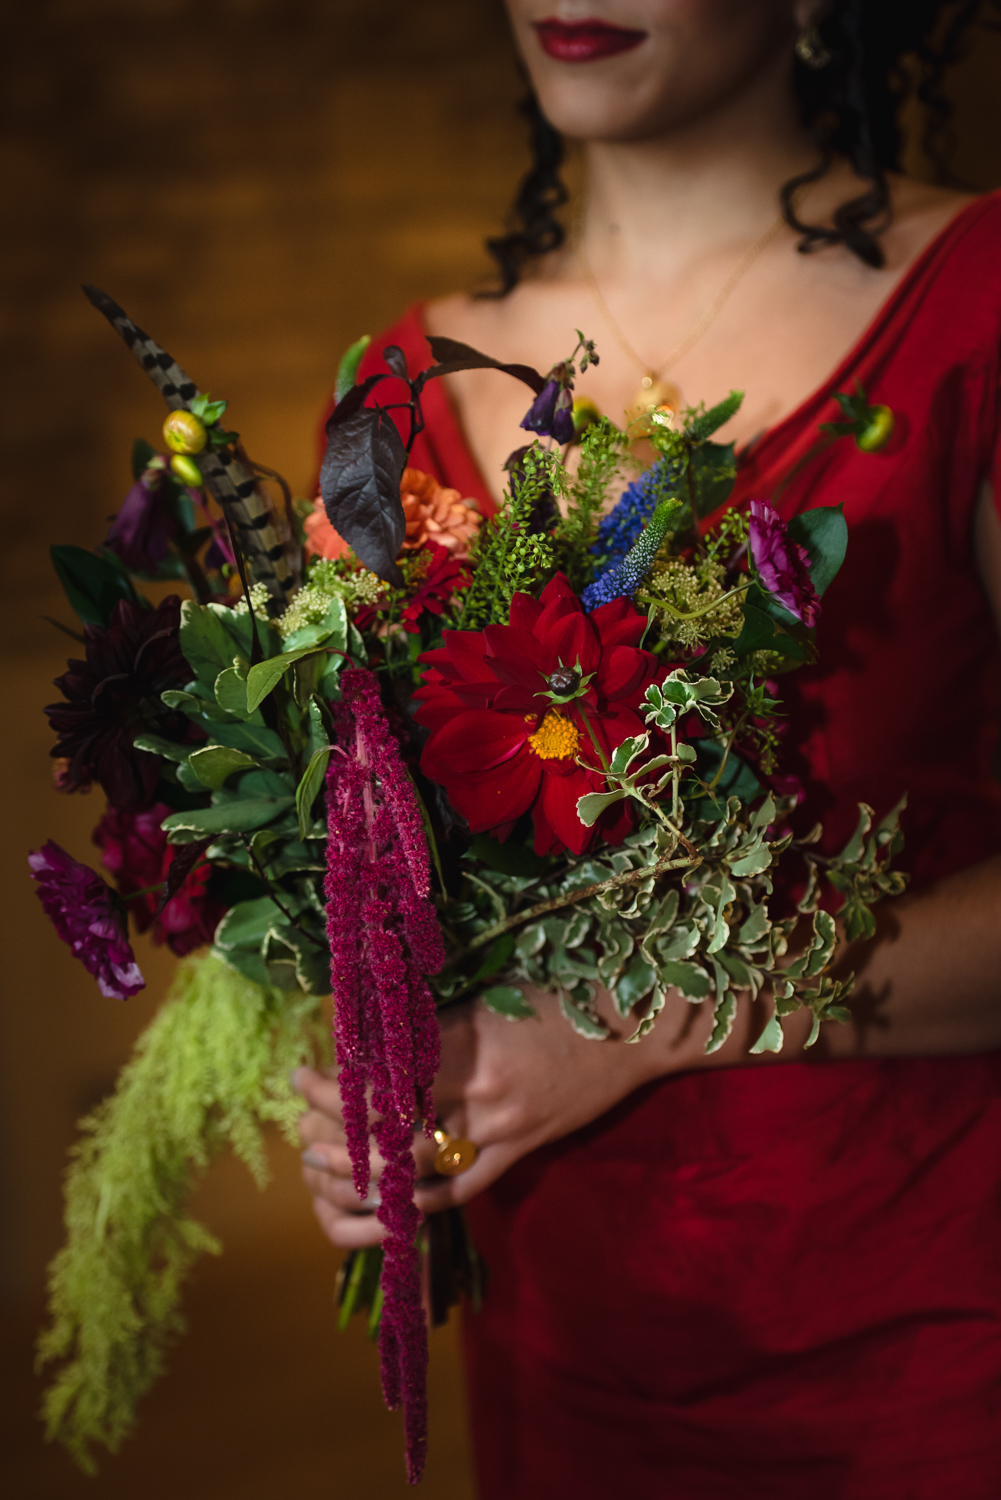 Ethical Wedding Ideas A Red Wedding Dress and Bespoke Accessories